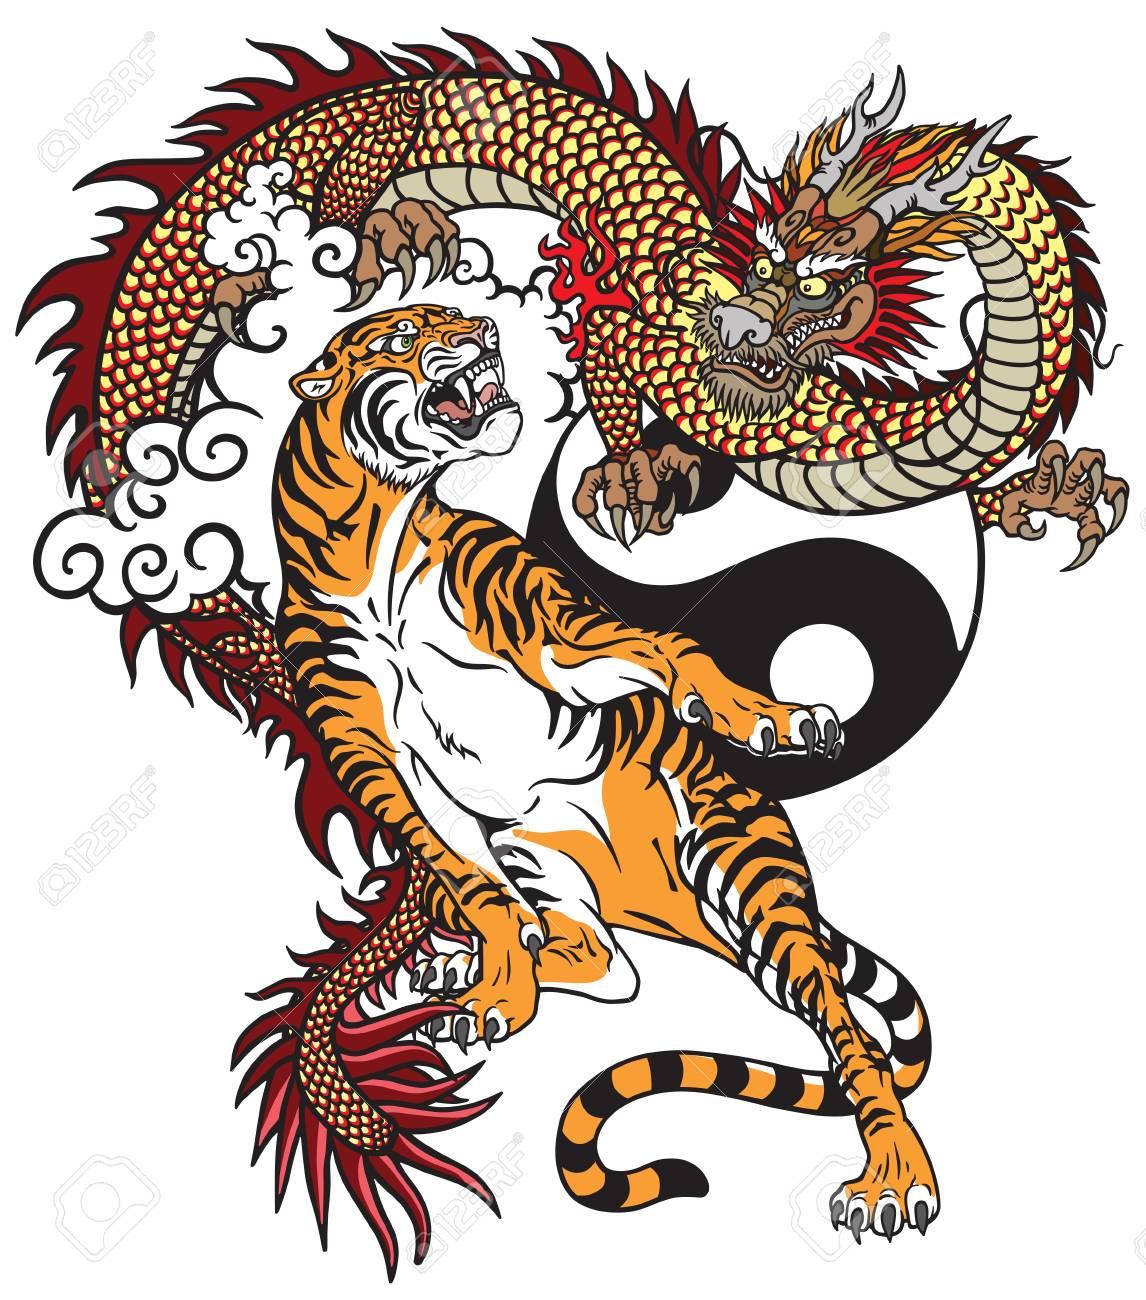 Chinese Dragon Versus Tiger Tattoo Vector Illustration Included